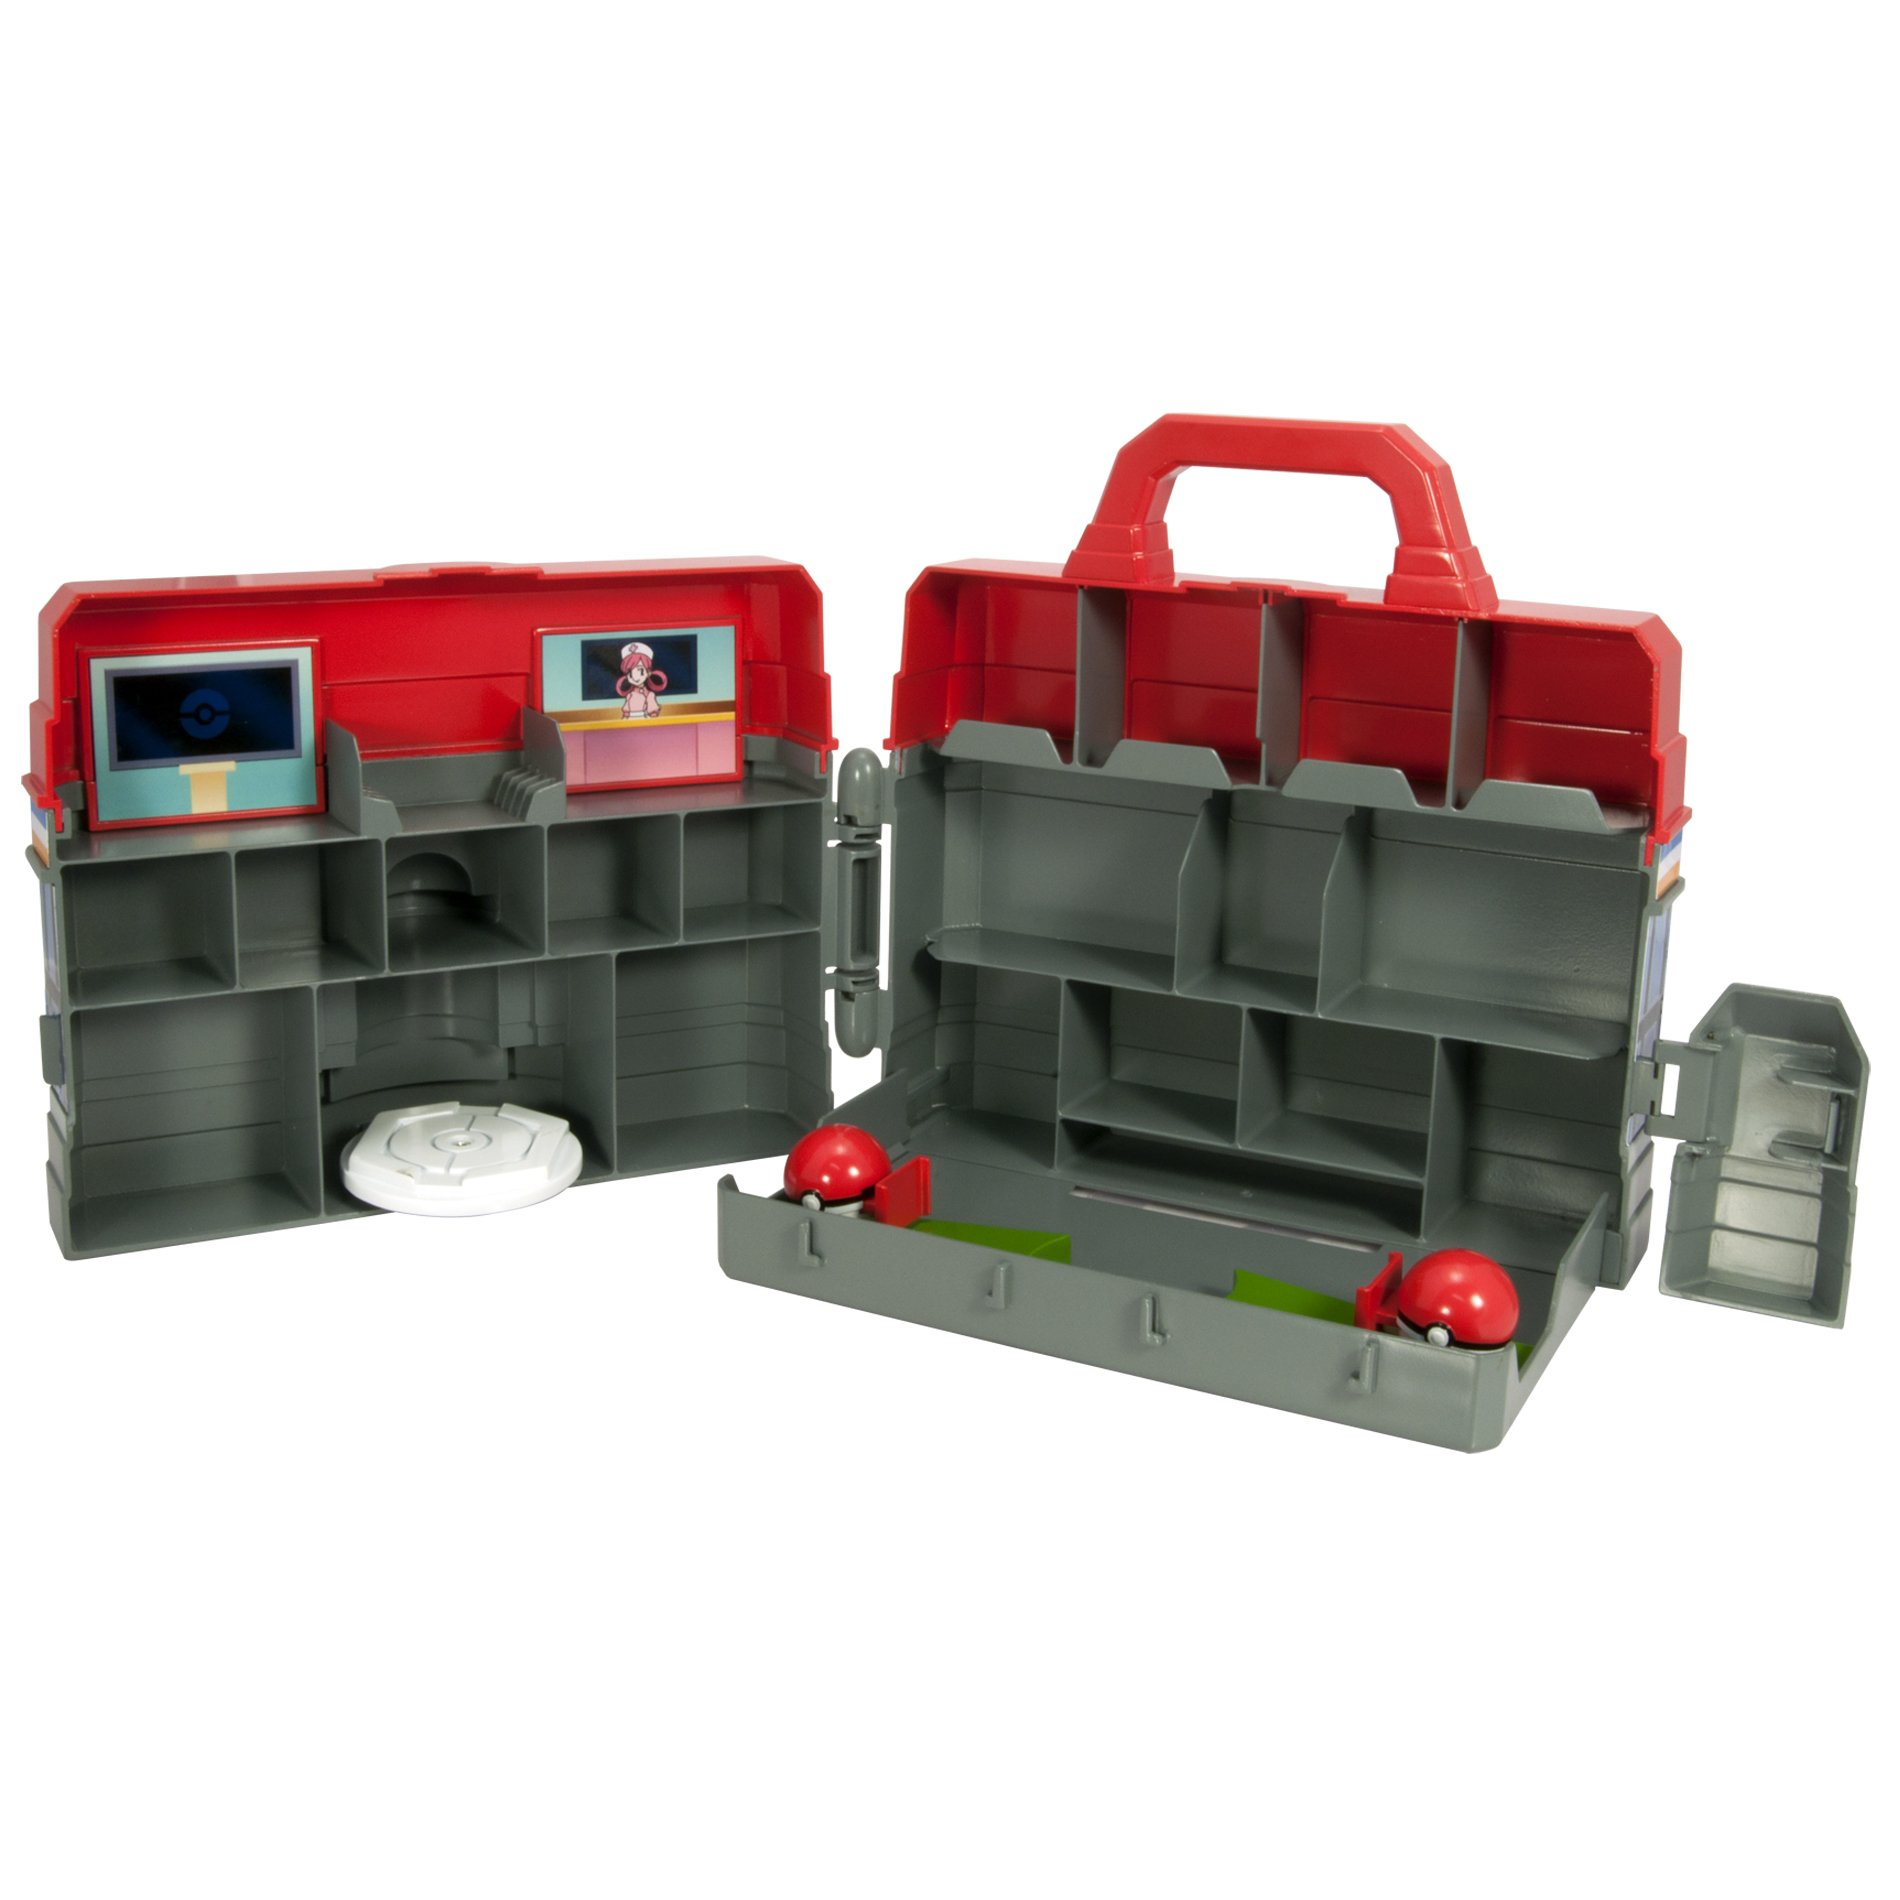 Pokmon Play Center Storage Case 6